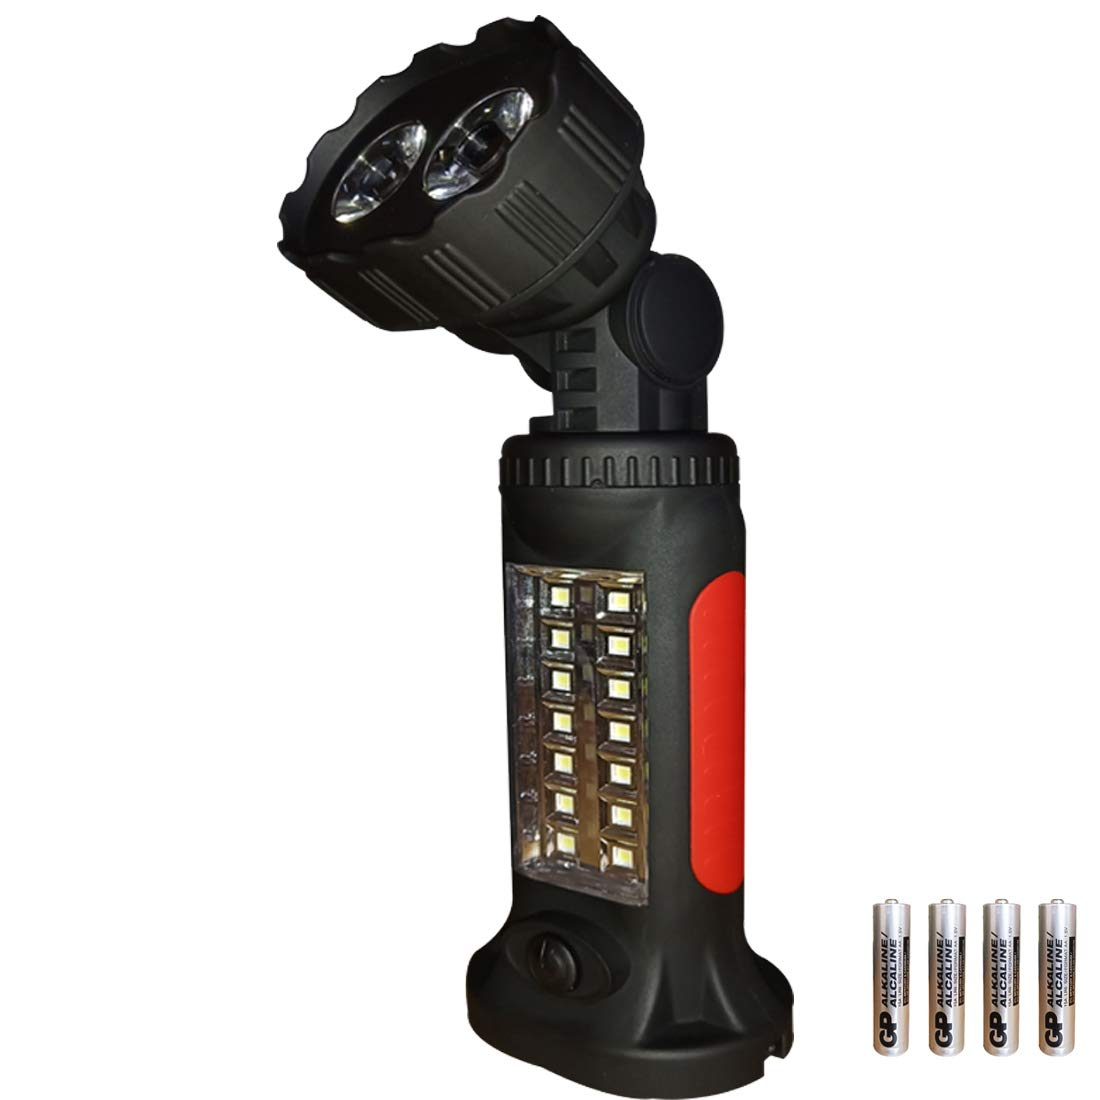 LED Work Light Camping Lantern Flashlight and COB Working Light with Magnetic Base Hanging Hook, Pocket LED Magnetic Flashlight for Car Repairing, Blackout and Emergency